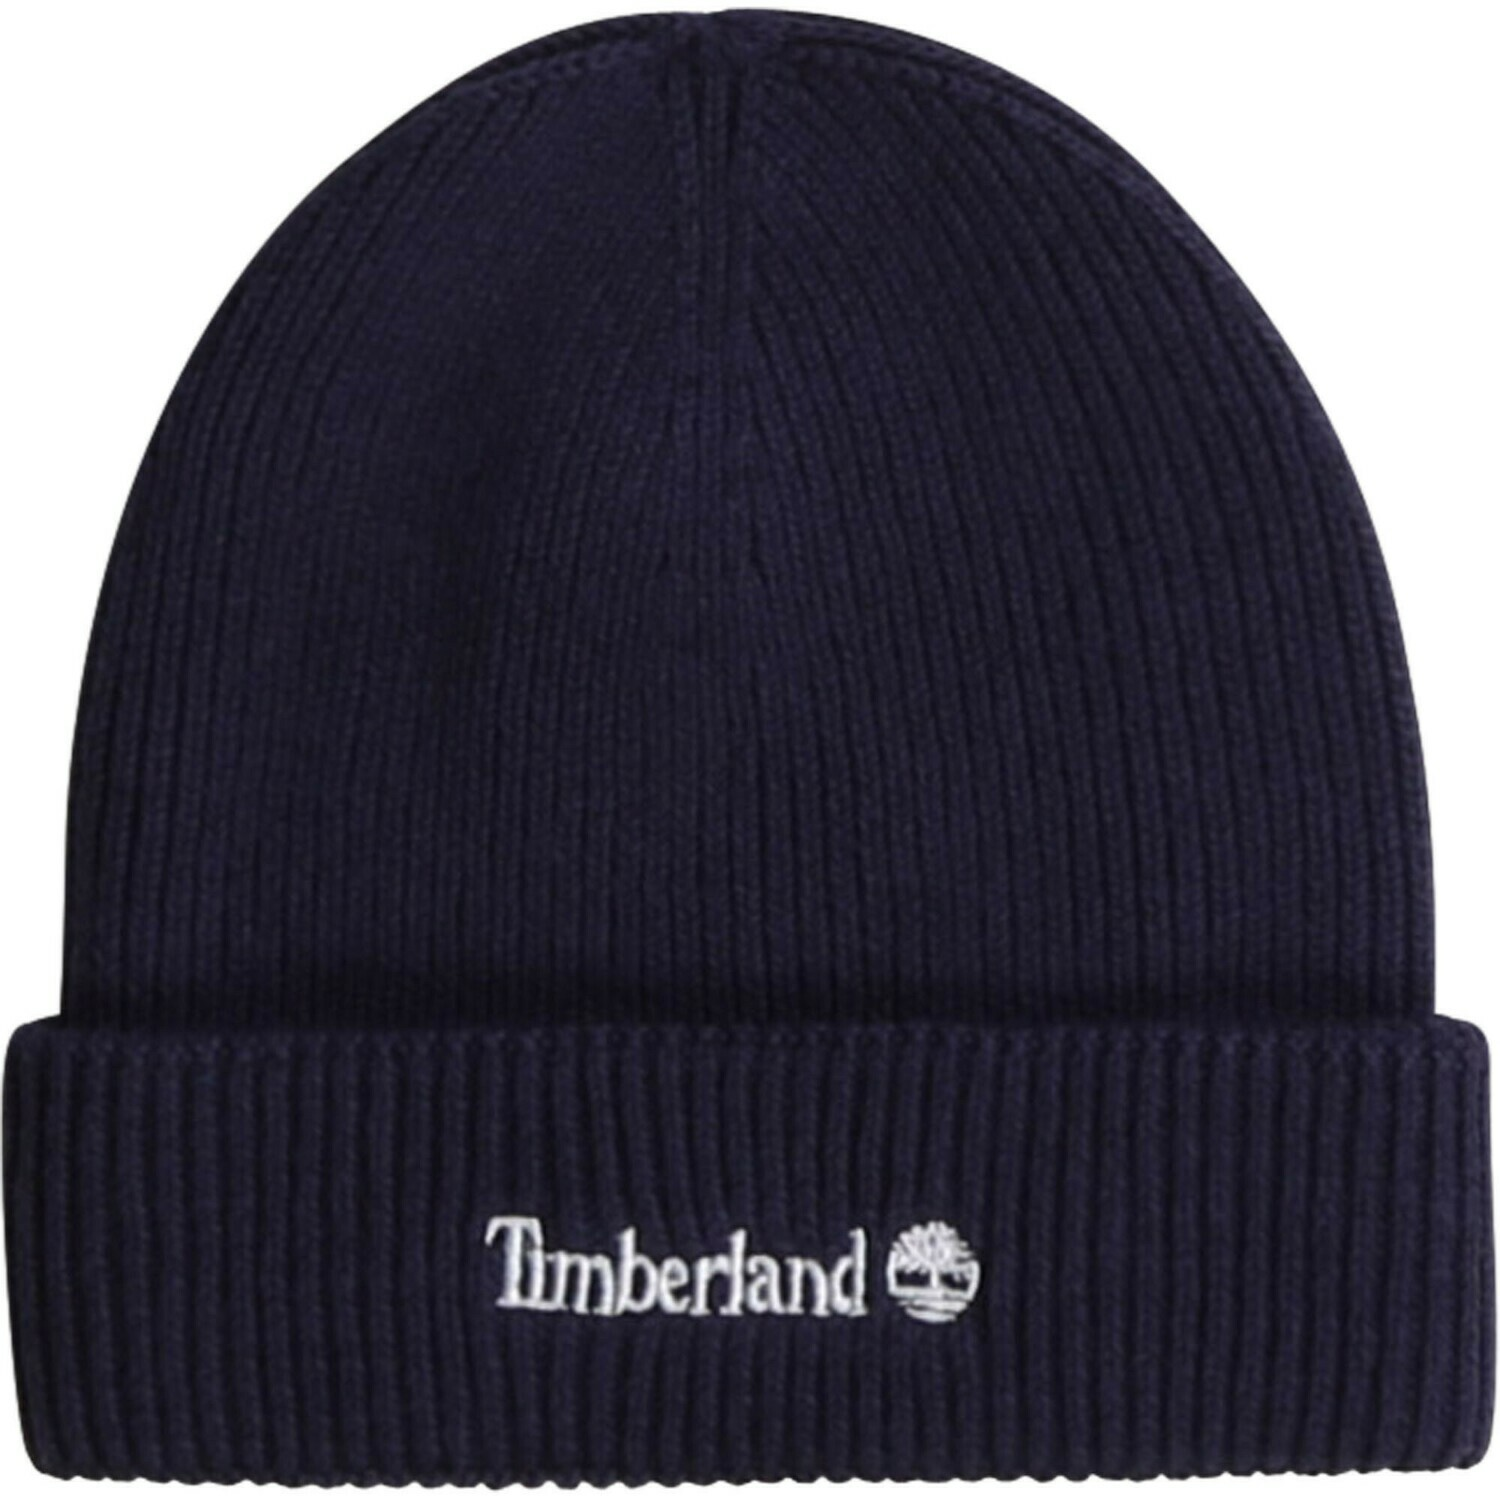 Timberland Navy  Pull on HAT